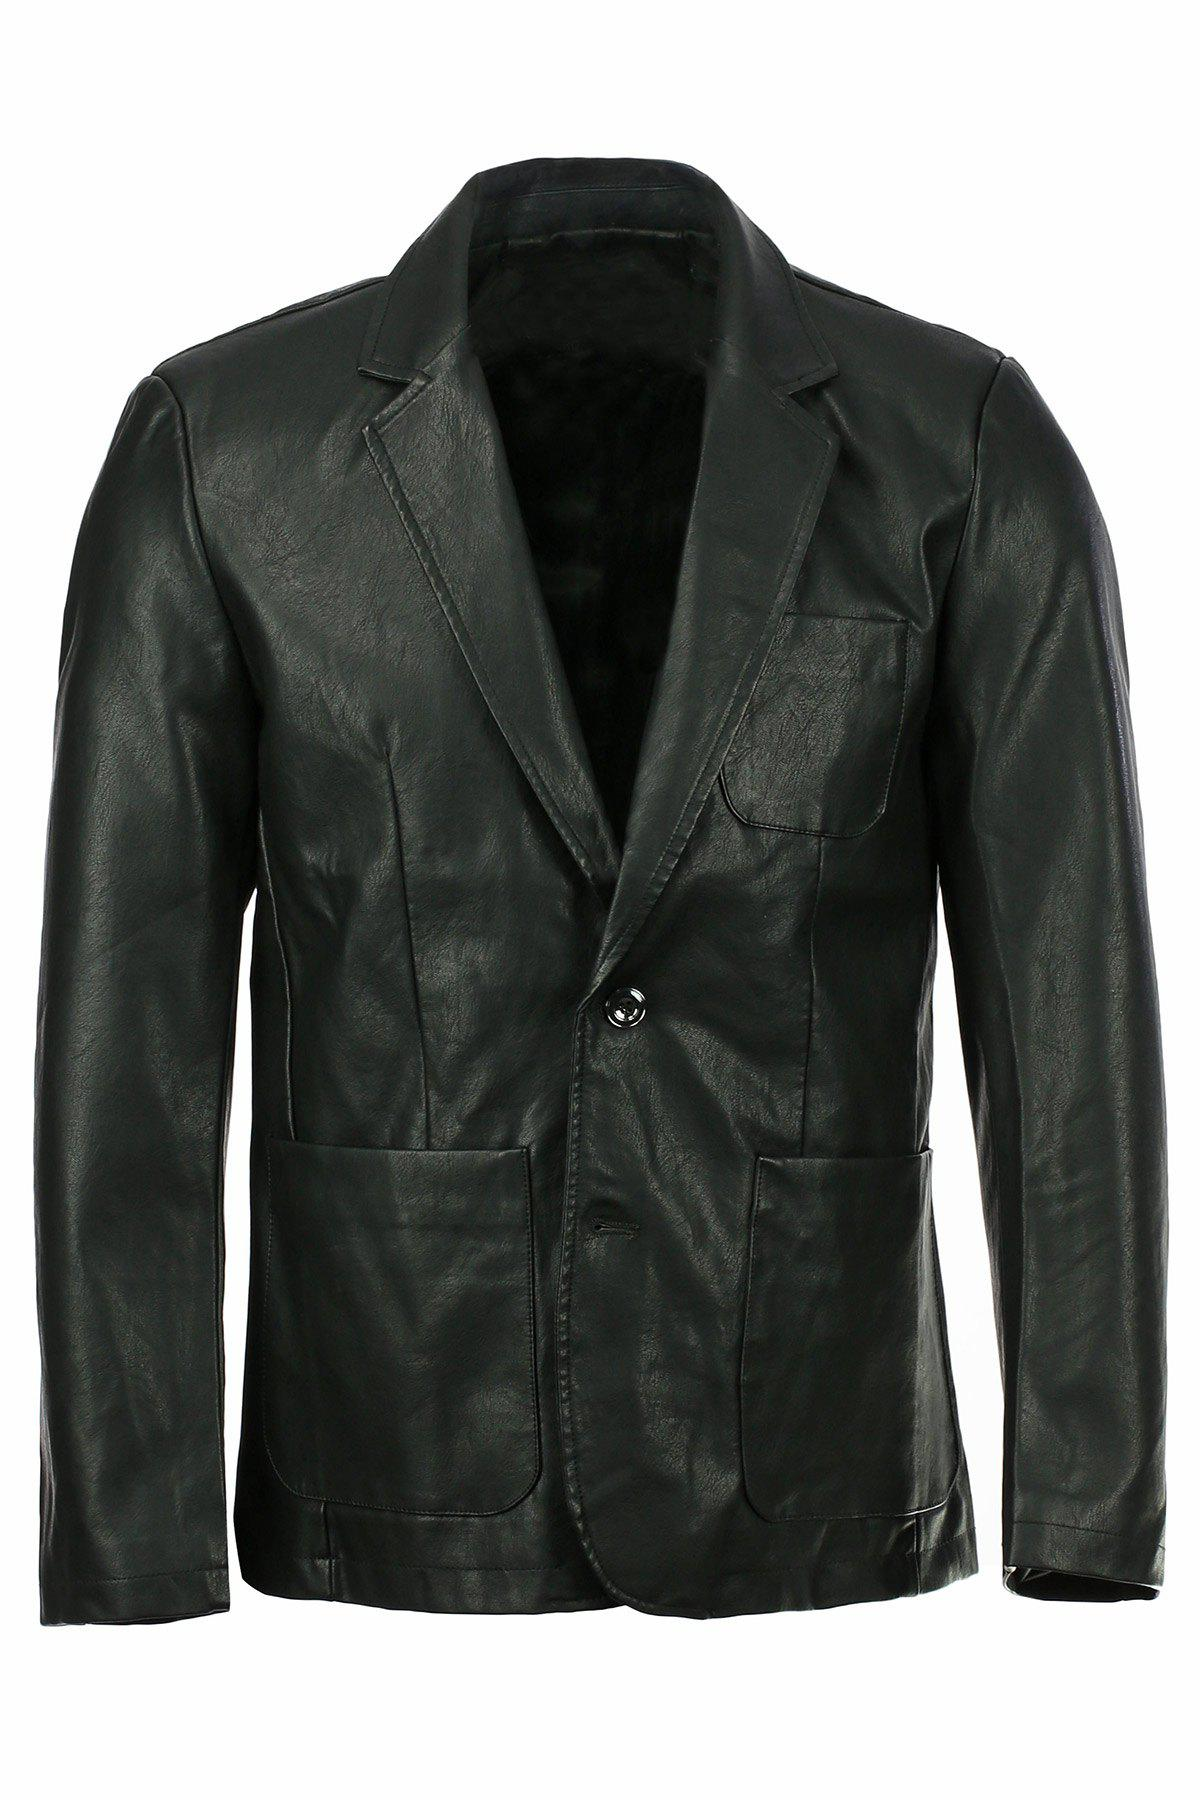 Stereo Patch Pocket Solid Color Lapel Long Sleeves Men's PU Leather Blazer - BLACK 2XL